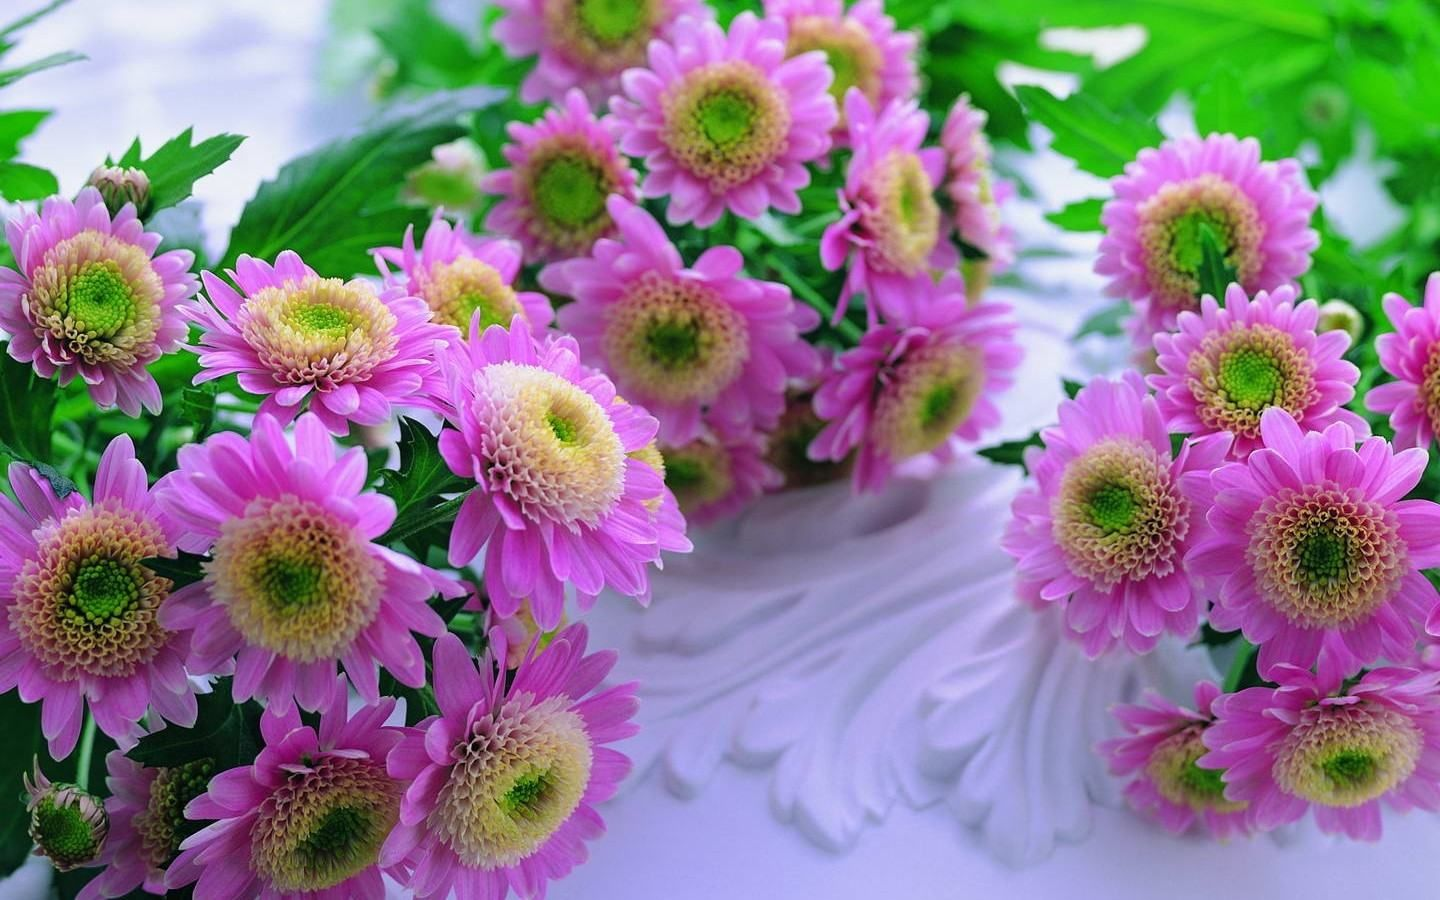 Flowers Background Pictures For Desktop Free Download Hd Background Picture Beautiful Flowers Images Beautiful Flowers Wallpapers Beautiful Flowers Pictures